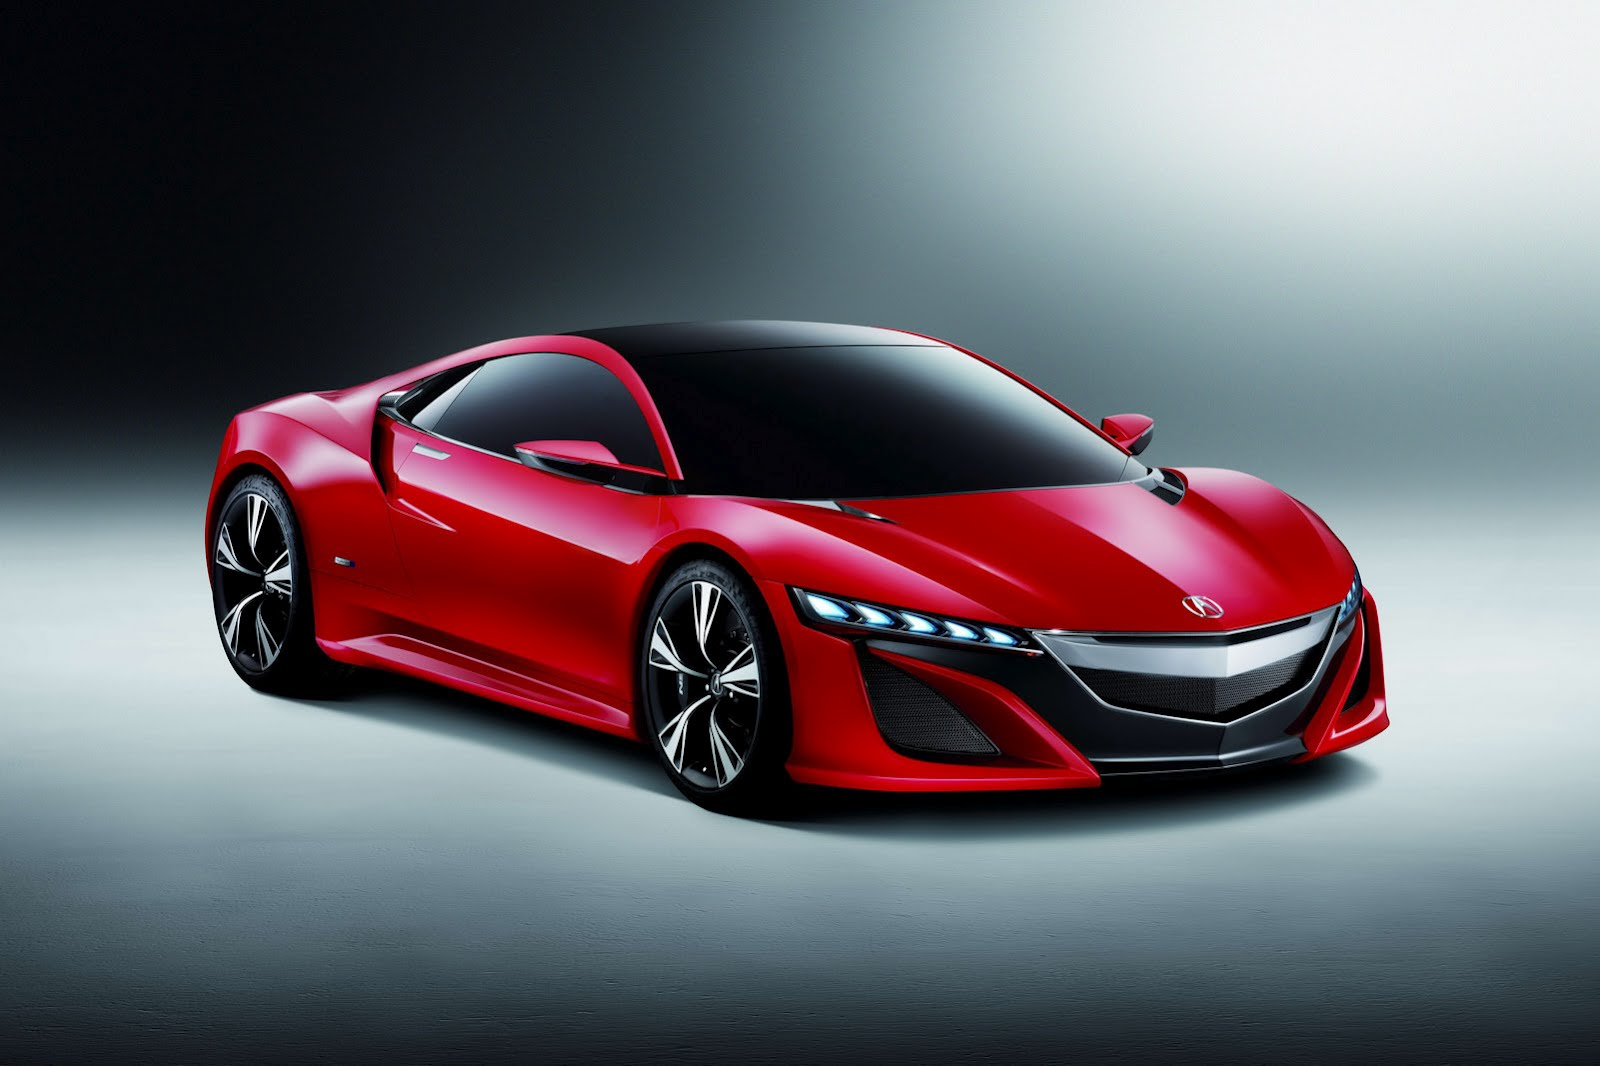 2019 Acura NSX Car Photos Catalog 2019